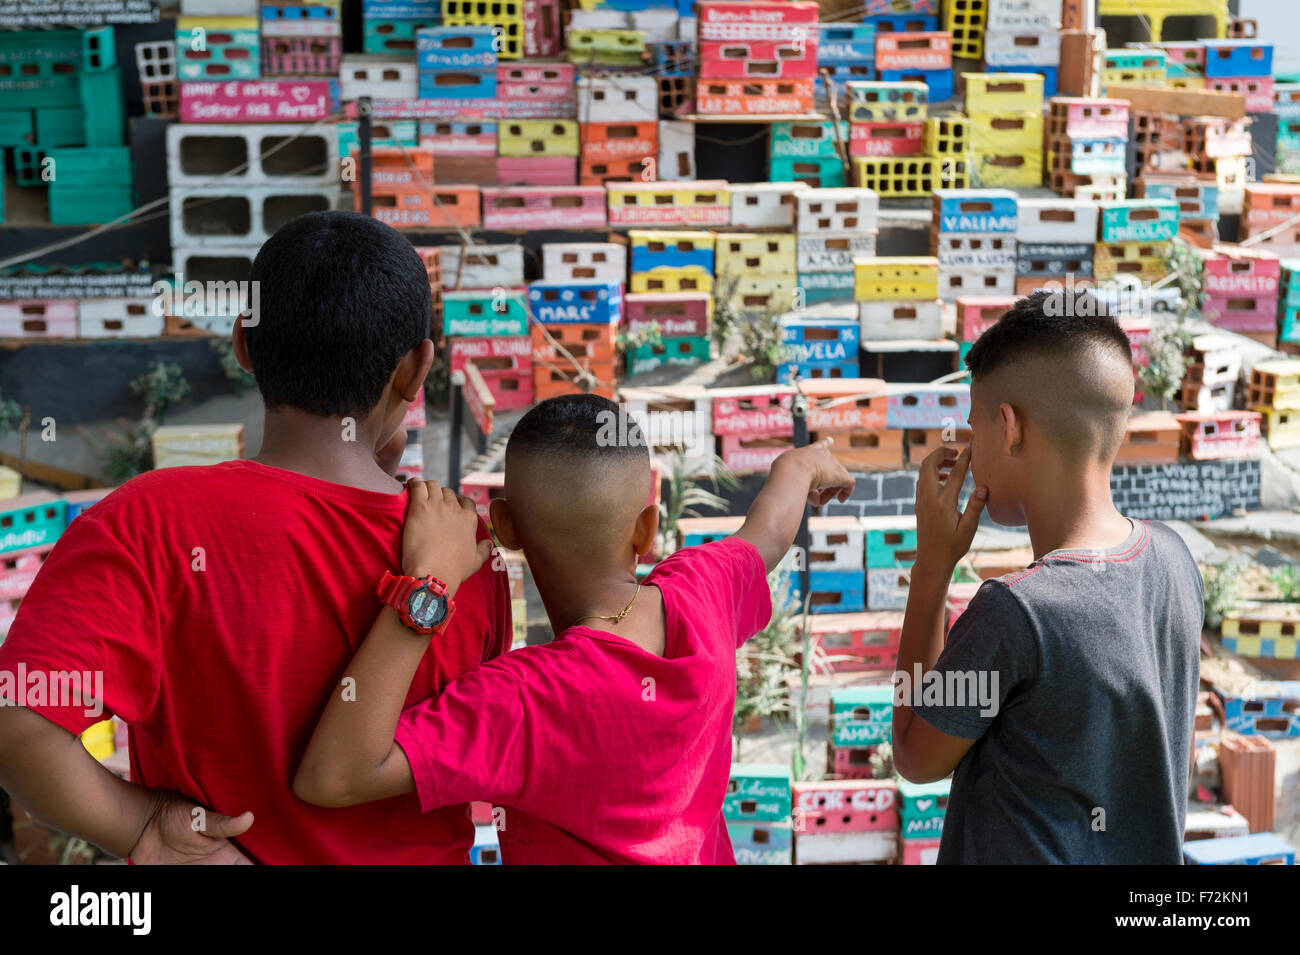 RIO DE JANEIRO, BRAZIL - OCTOBER 16, 2015: Young Brazilians stand looking at an social art installation depiction - Stock Image